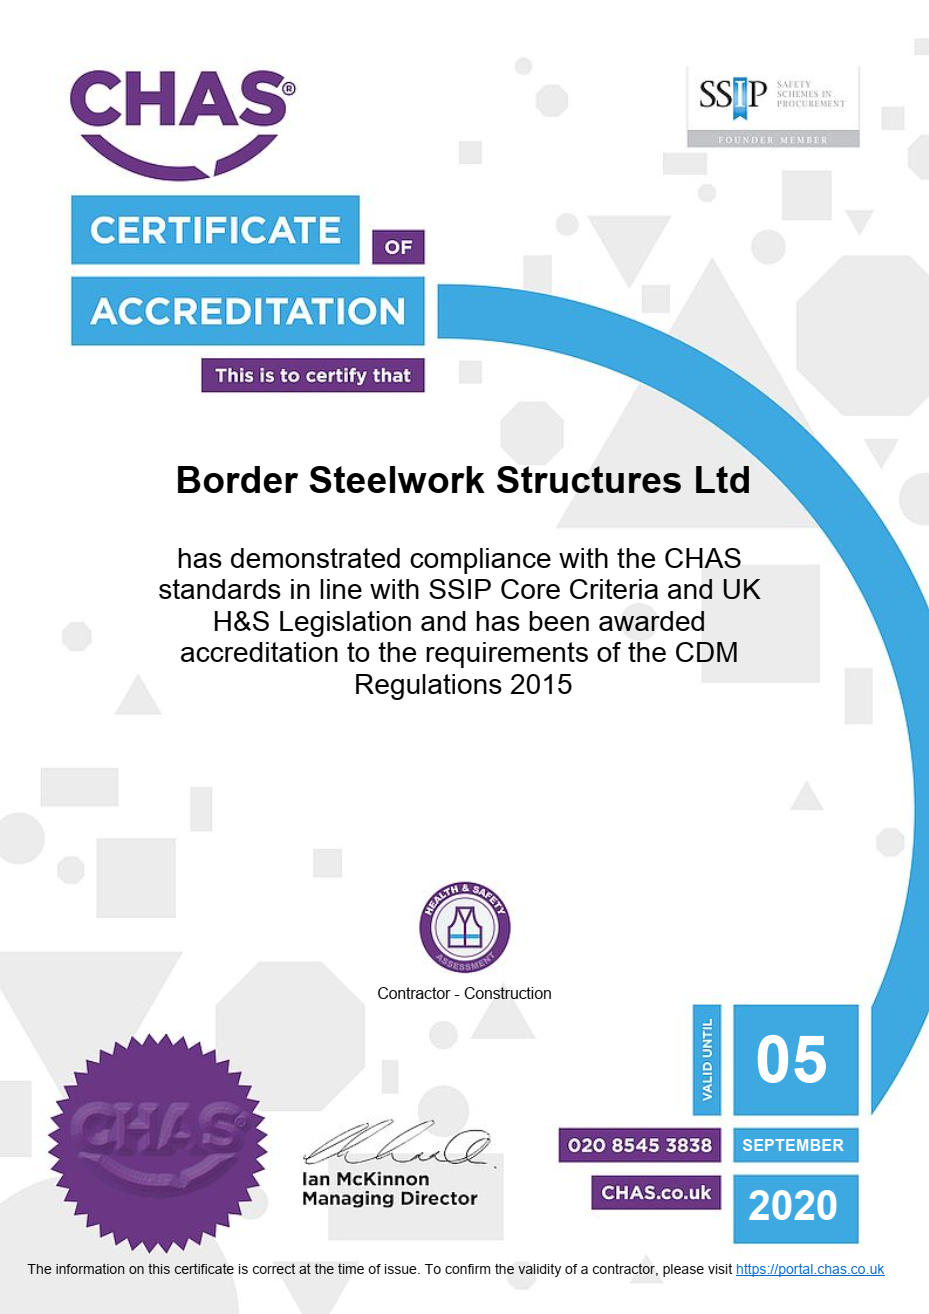 CHAS Certificate 2019-20